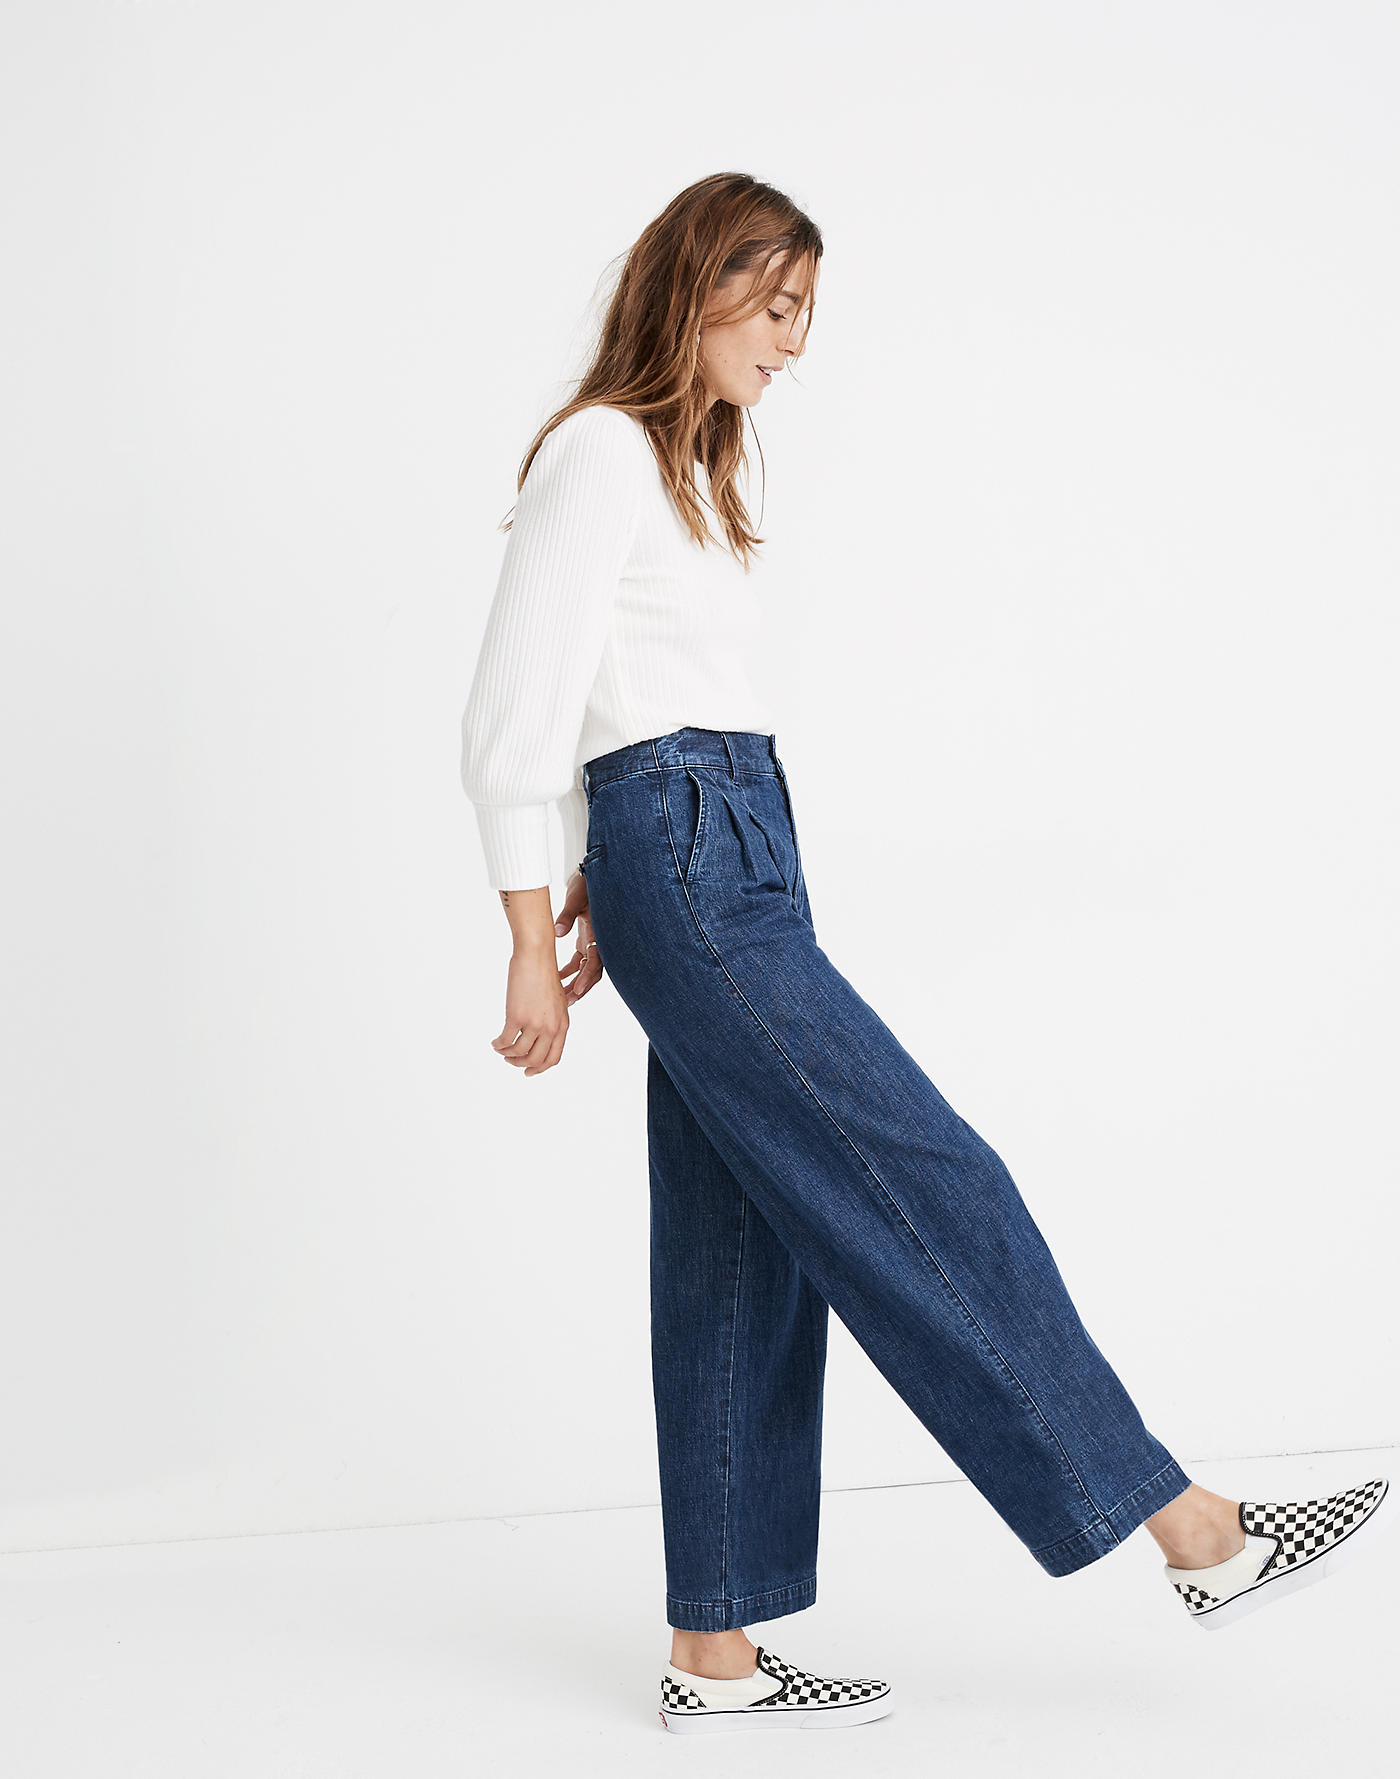 Madewell Pleated Wide-Leg Jeans in Seabrook Wash